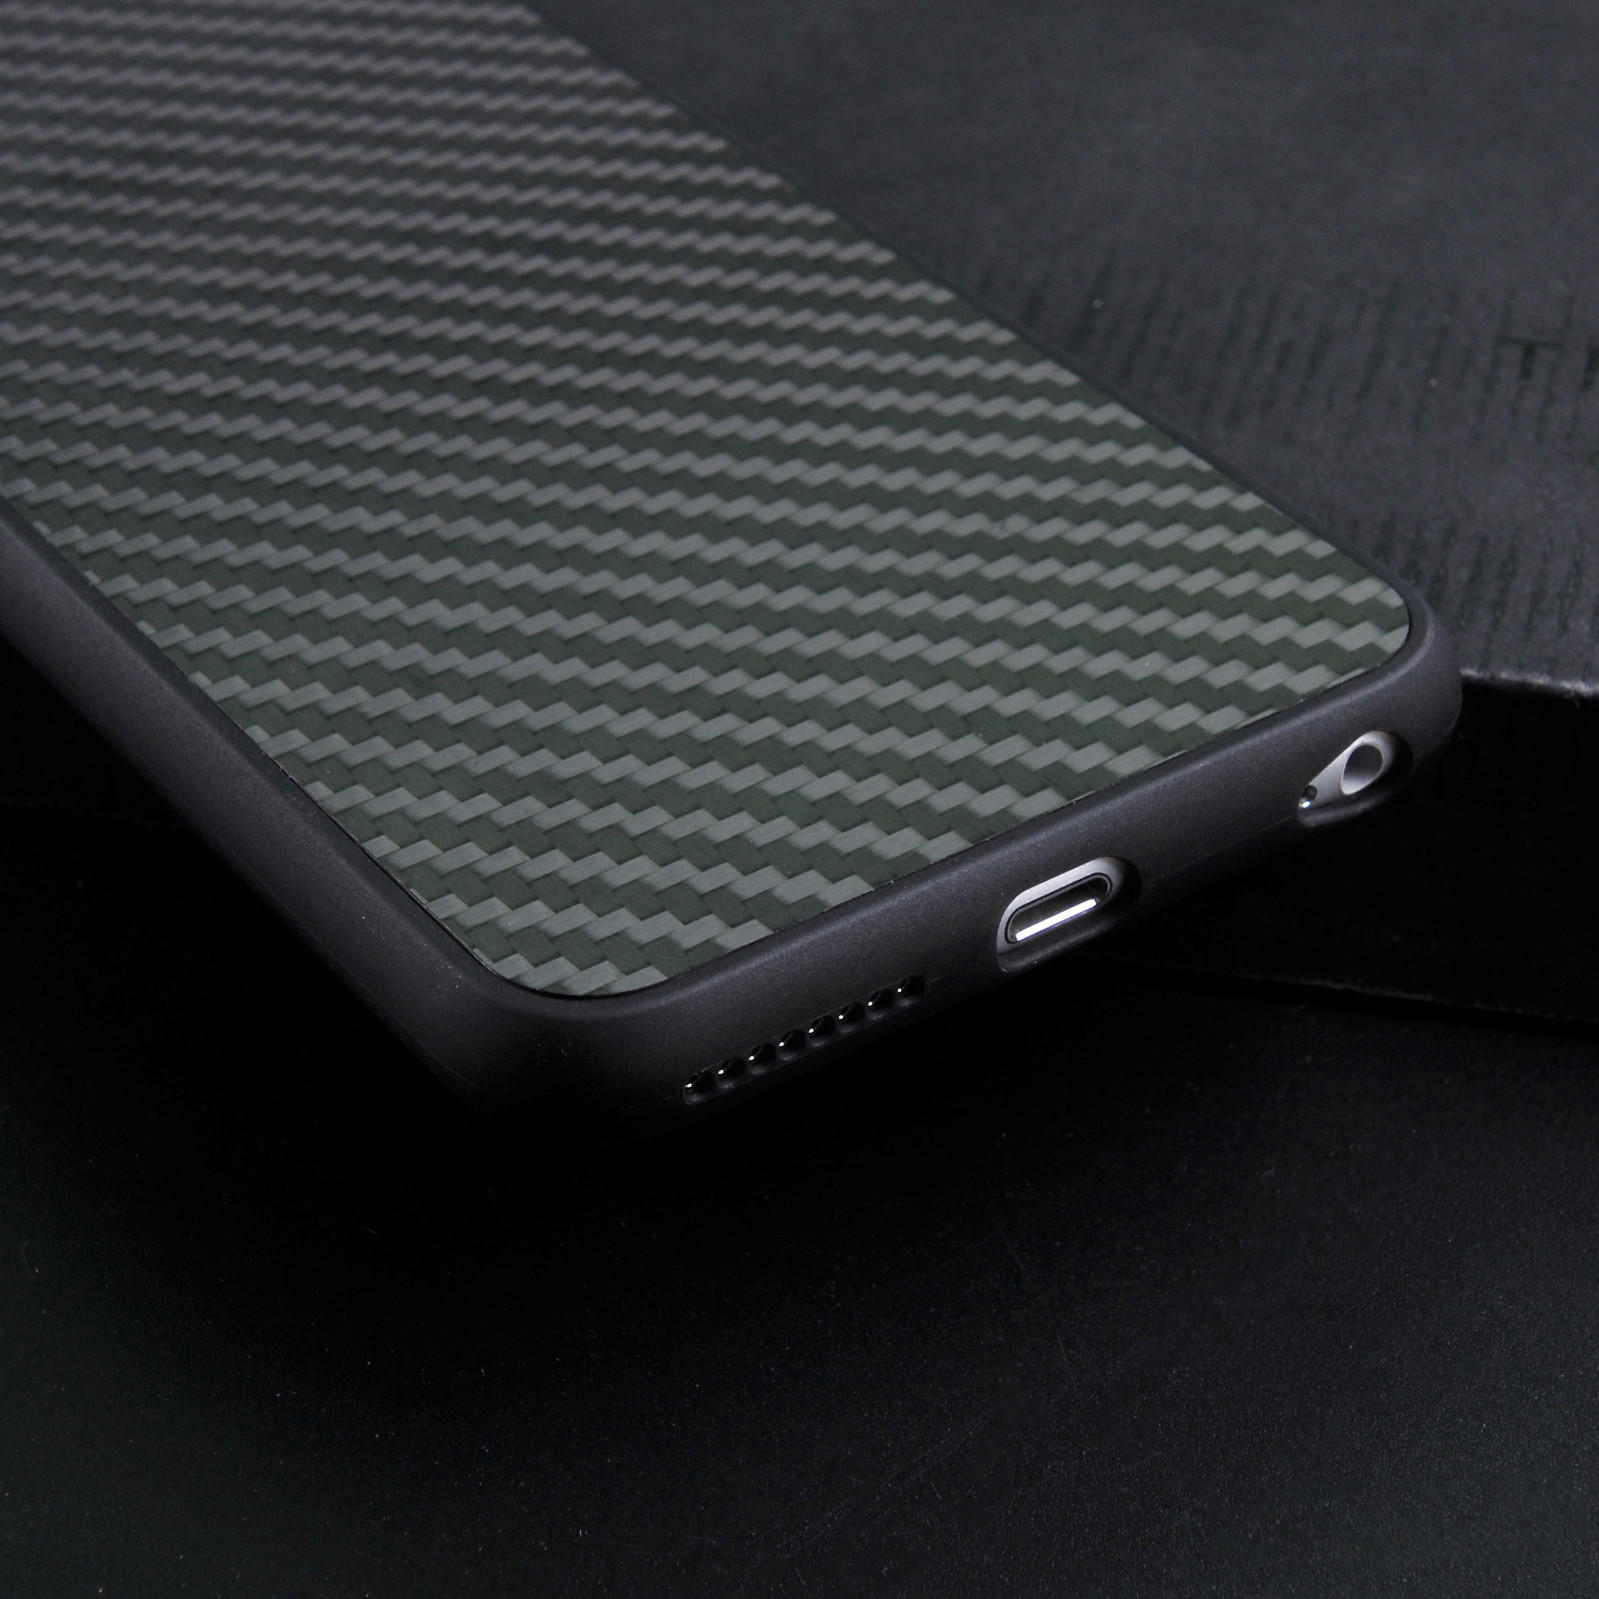 Luxury Black Real Carbon Fiber Case For Iphone CB0001-3